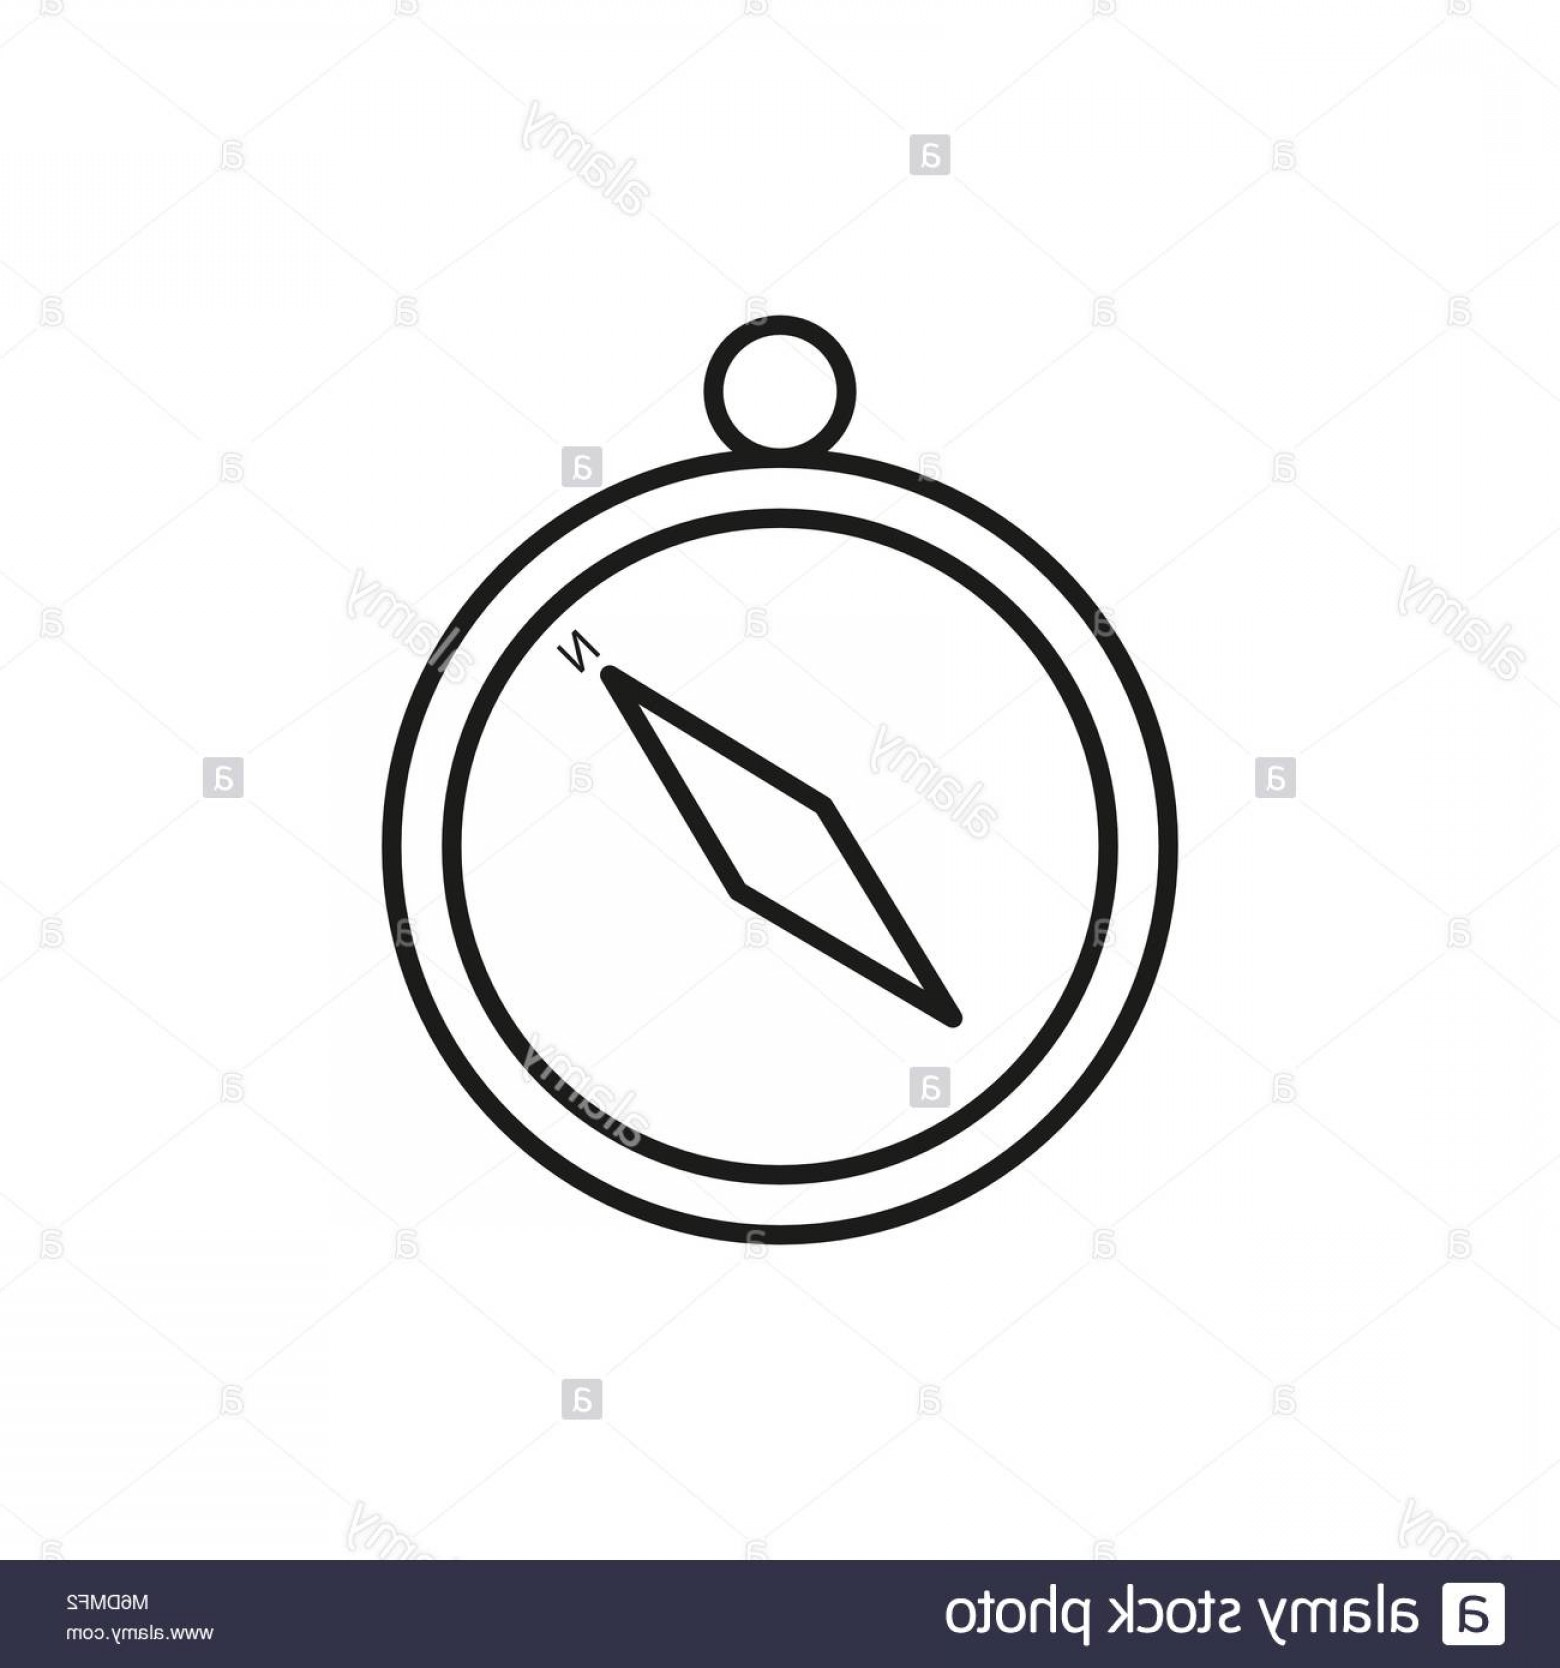 Simple Compass Vector Black And White: Stock Photo Simple Compass Adventure Thin Line Icon Symbol Vector Illustration